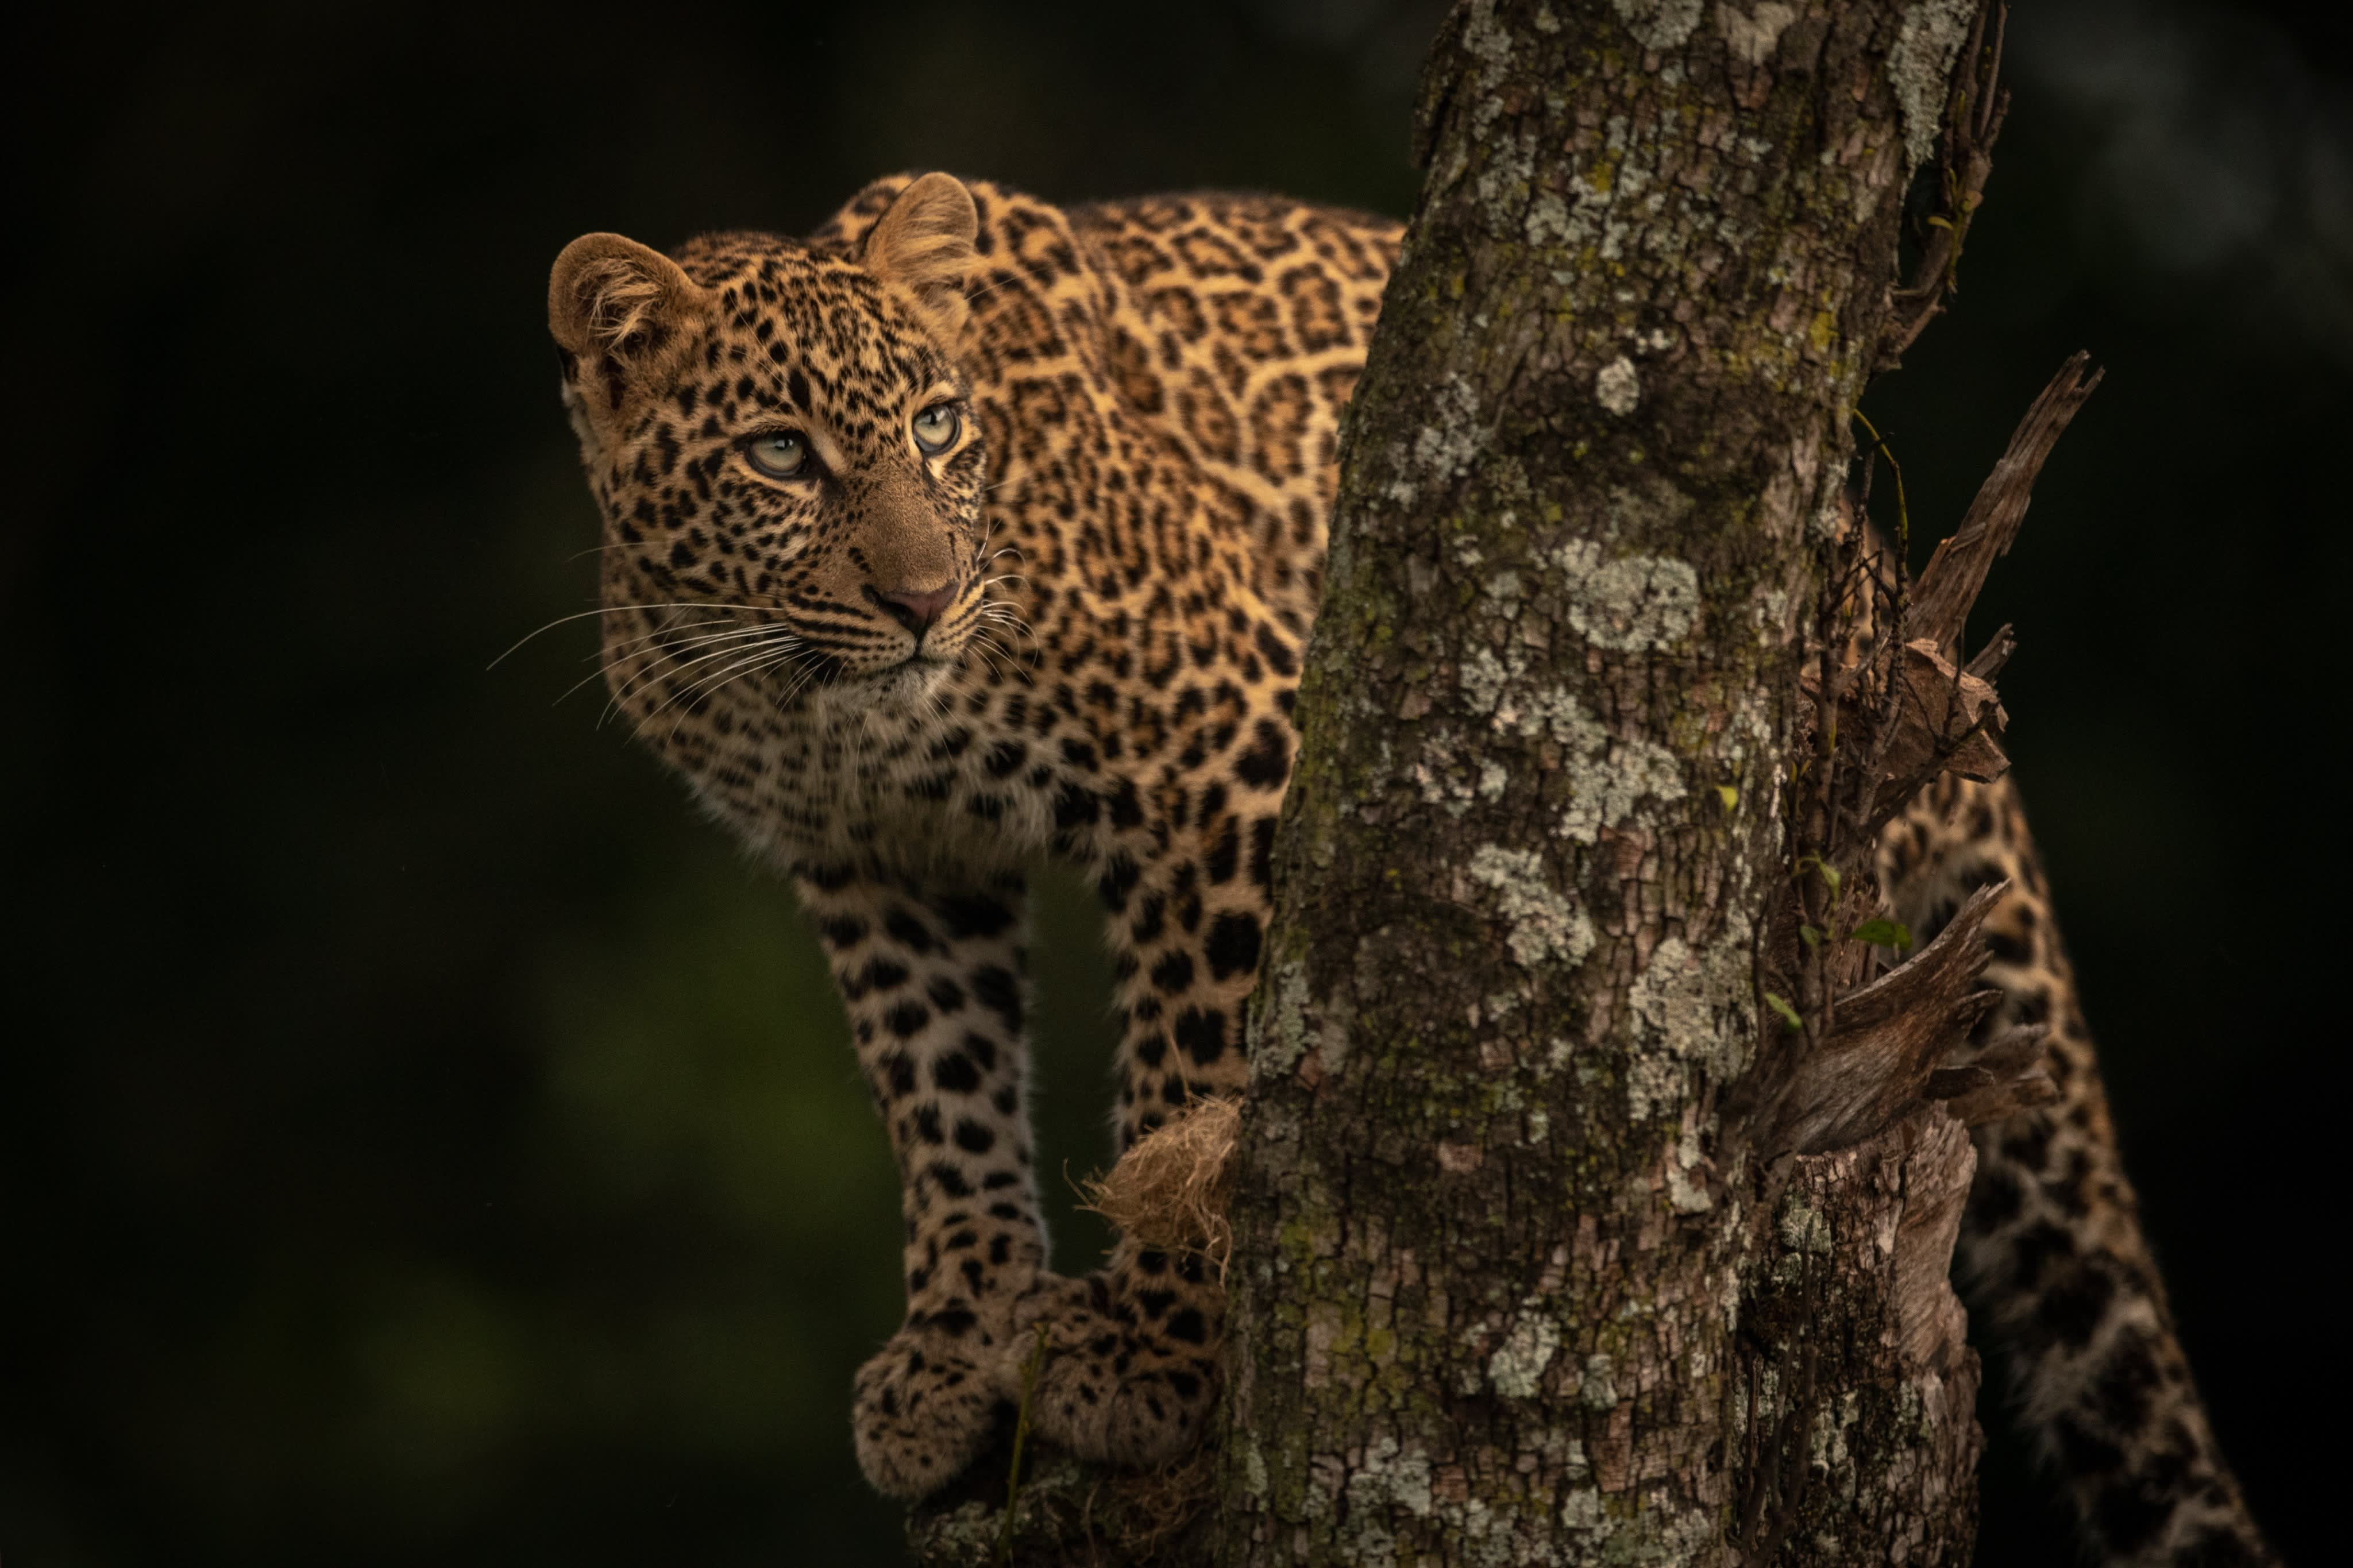 Leopard looks up from perch in tree